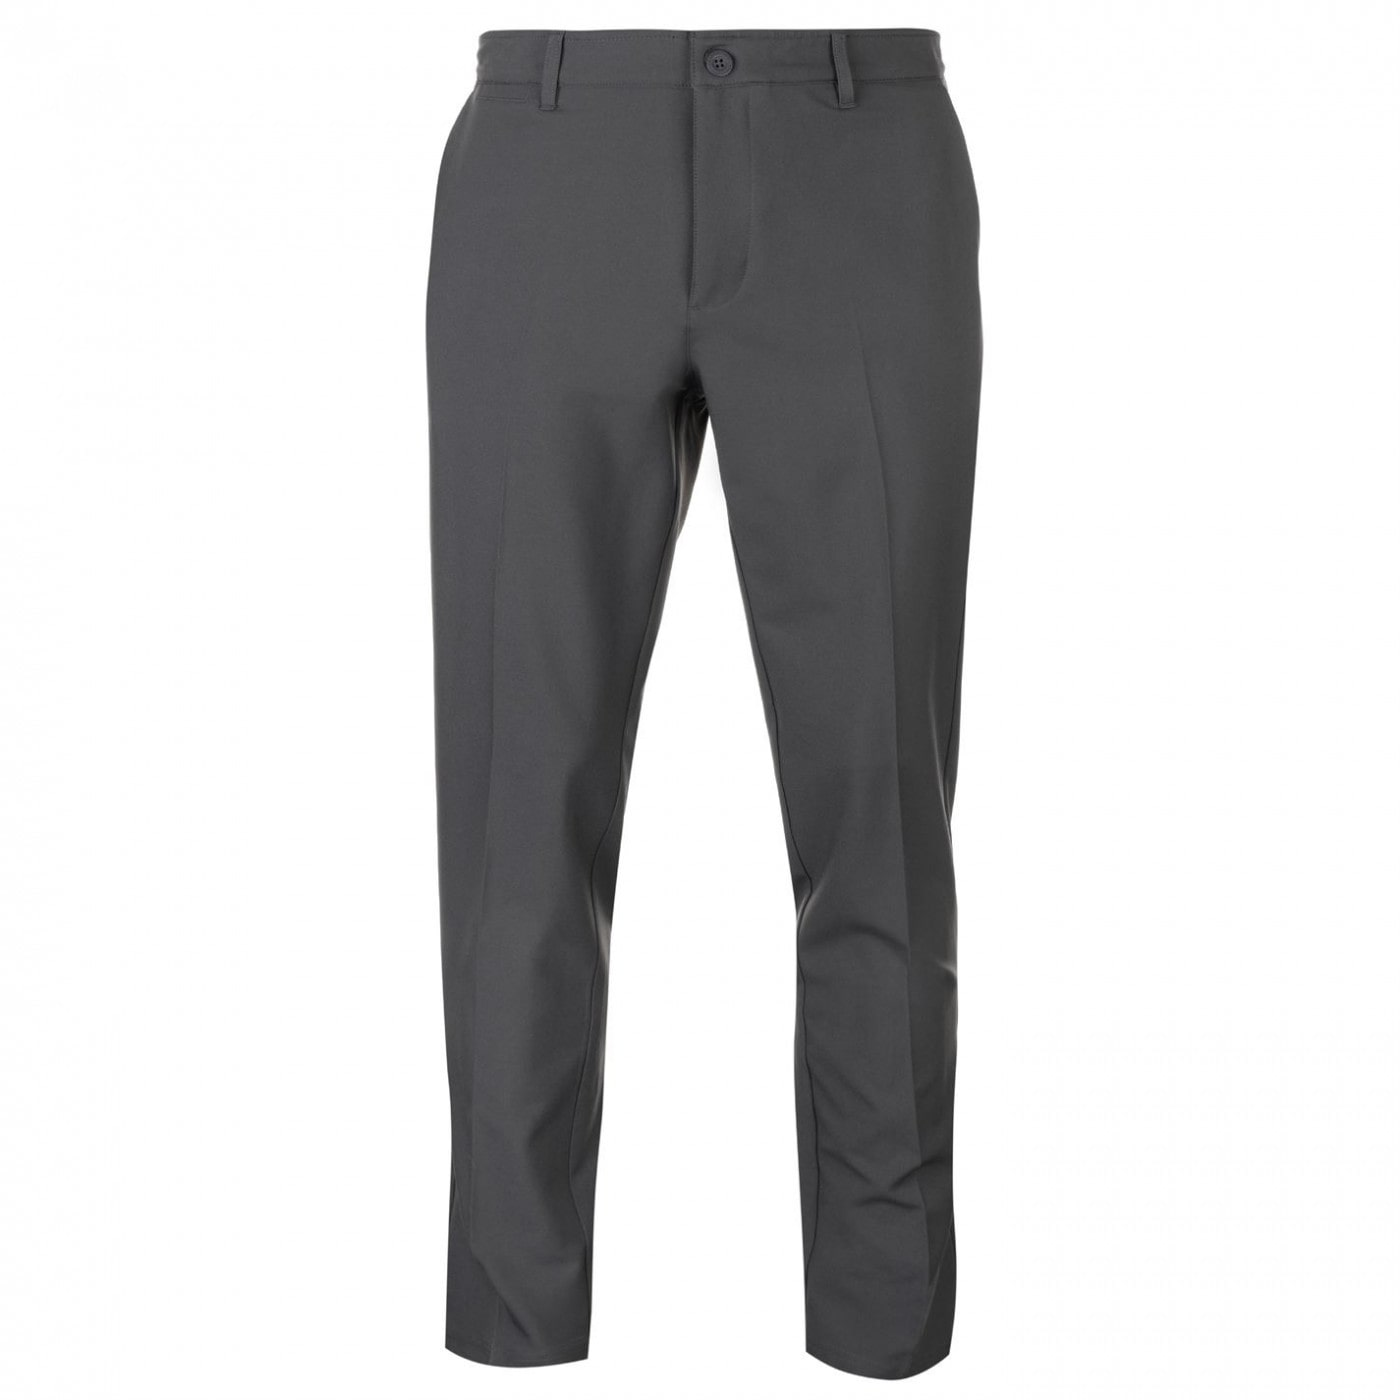 Slazenger Performance Golf Trousers Mens